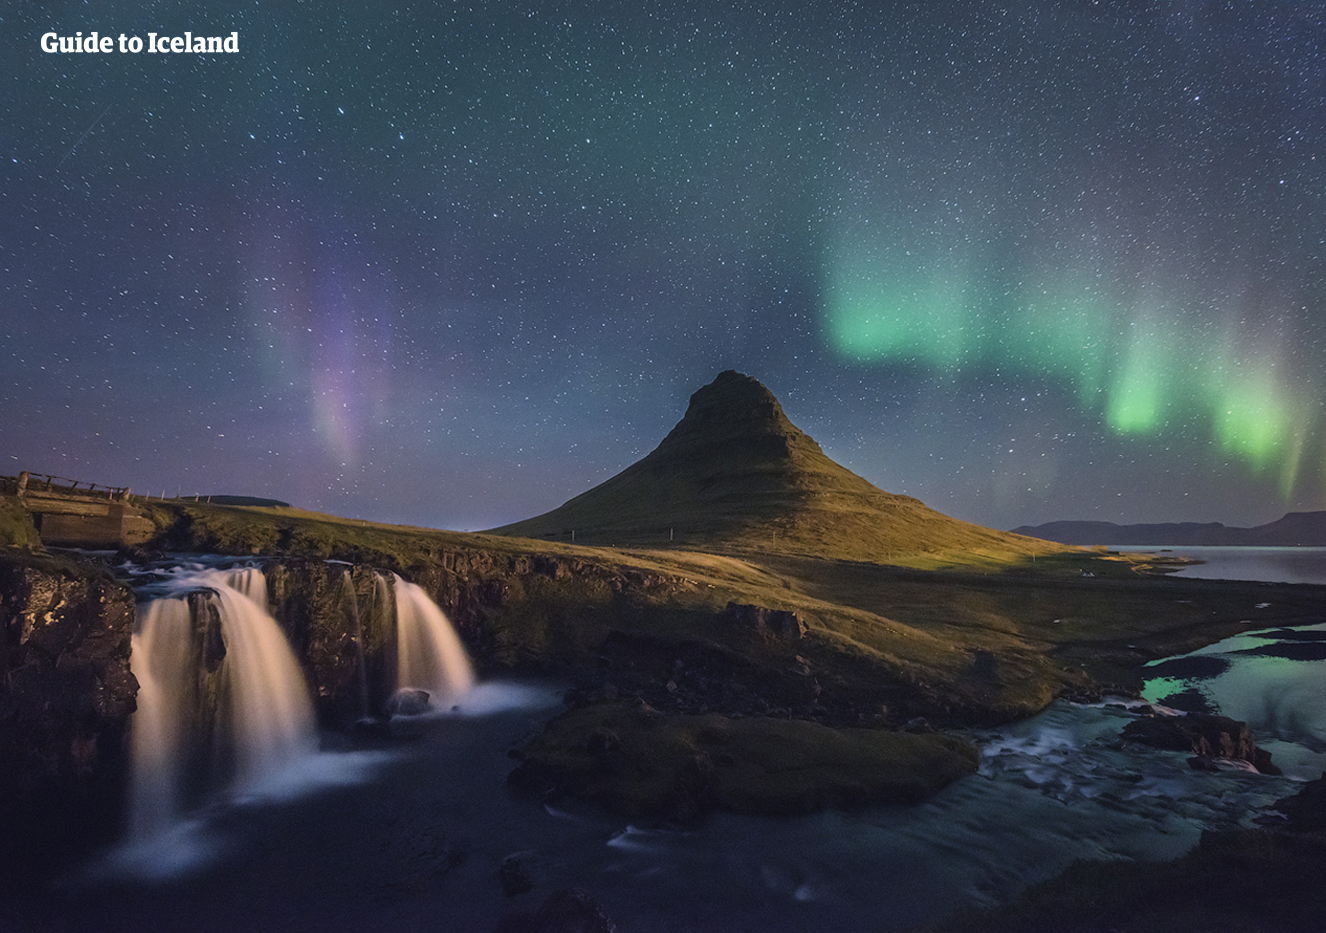 Explore the arrowhead-shaped mountain, Kirkjufell, as the Northern Lights dance above with a winter self-drive tour.